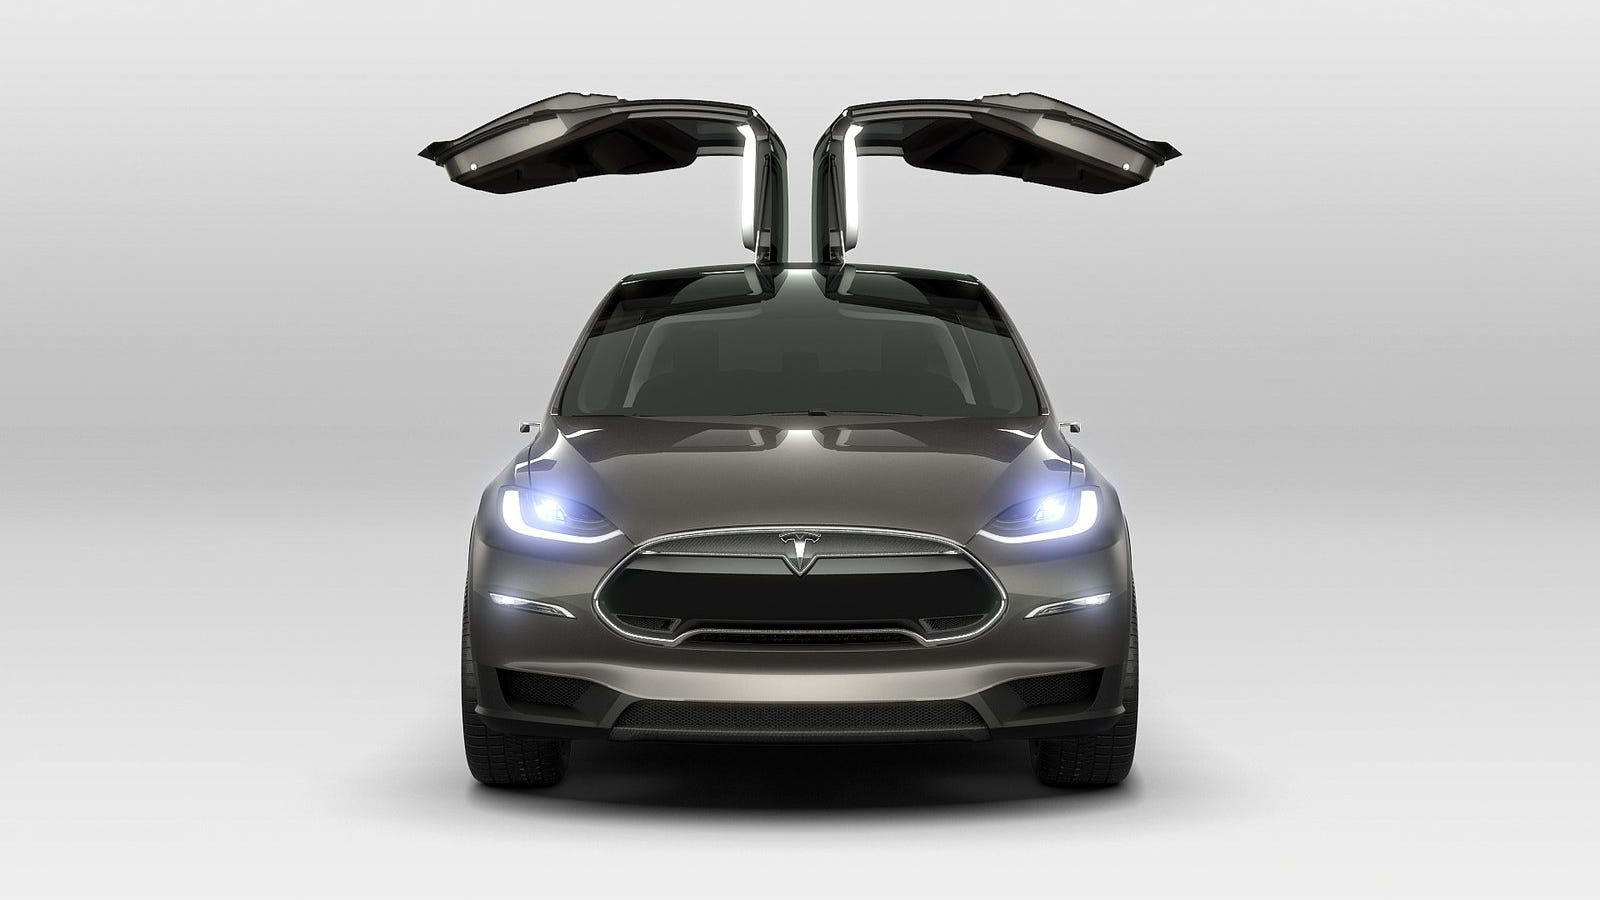 Yes, The Tesla Model X Will Have Those Crazy Falcon Doors